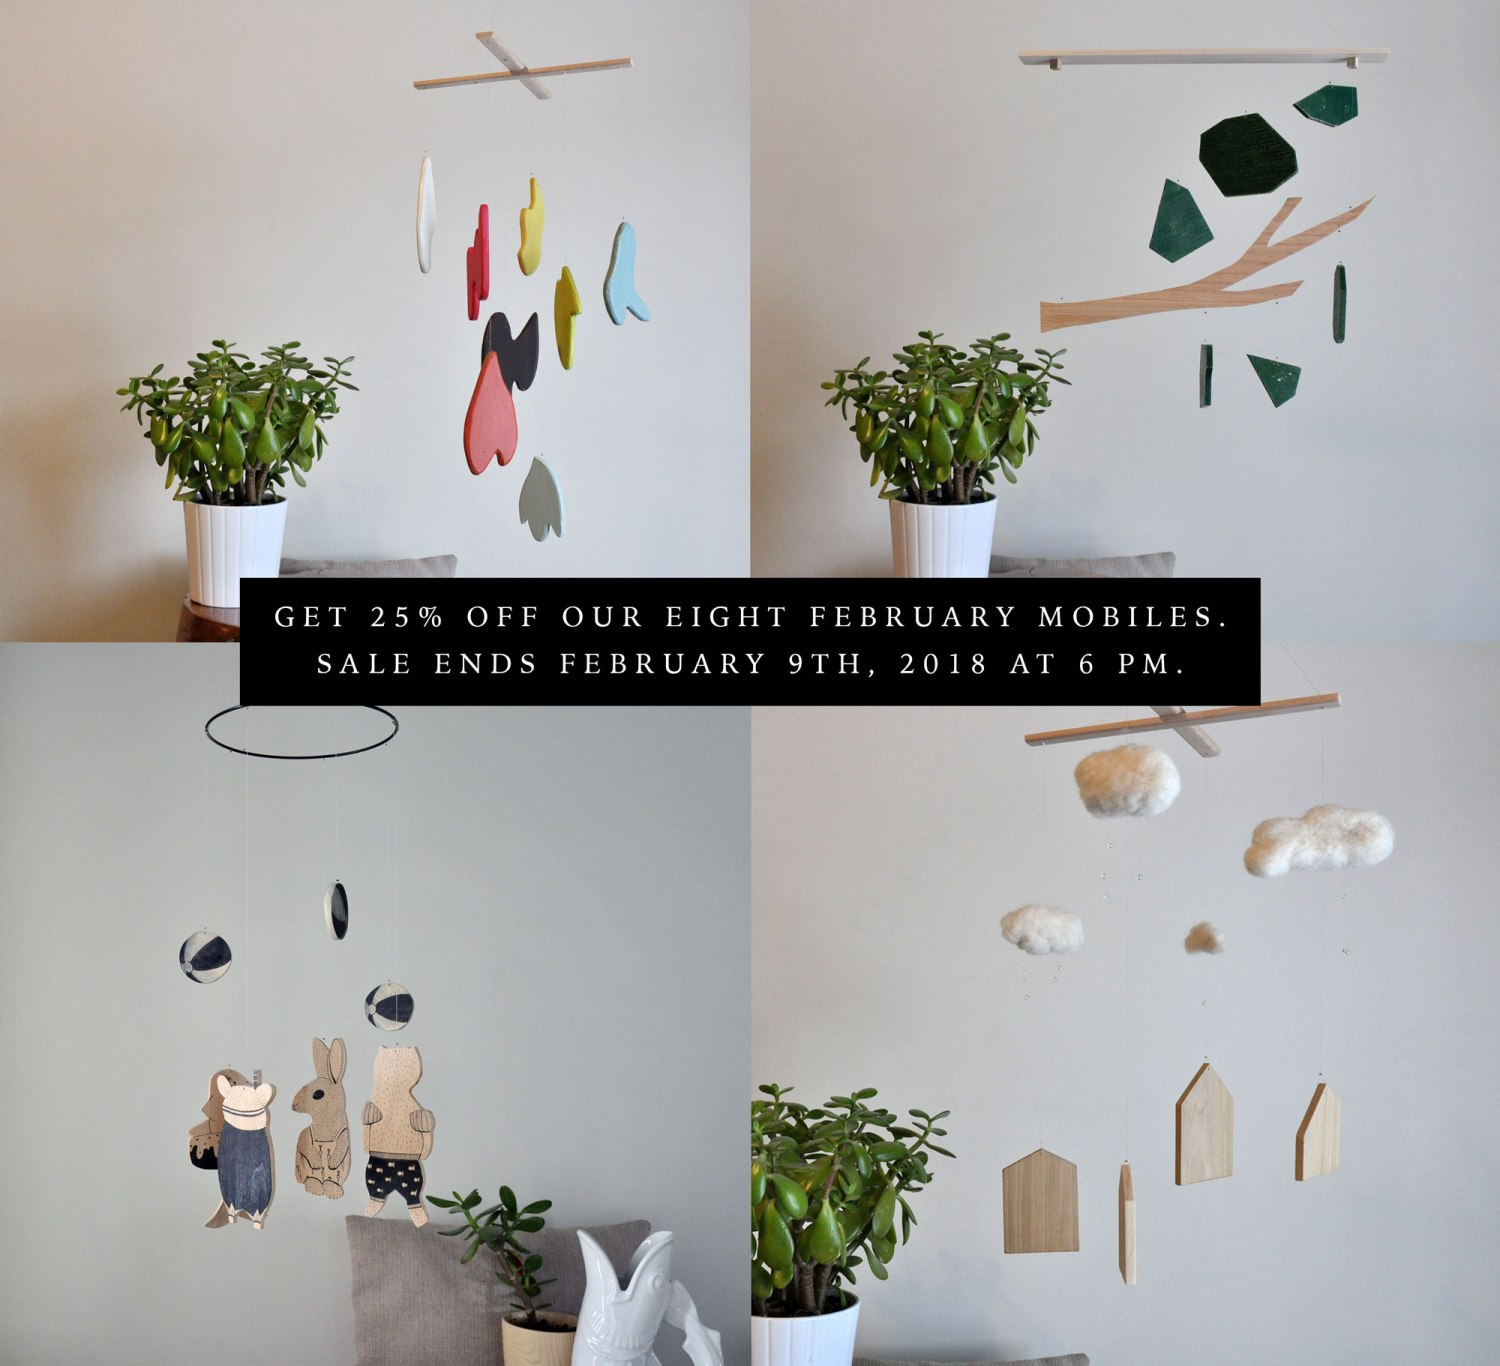 Annex Suspended Art - Mobiles On Sale - Handmade and the best baby shower gift.